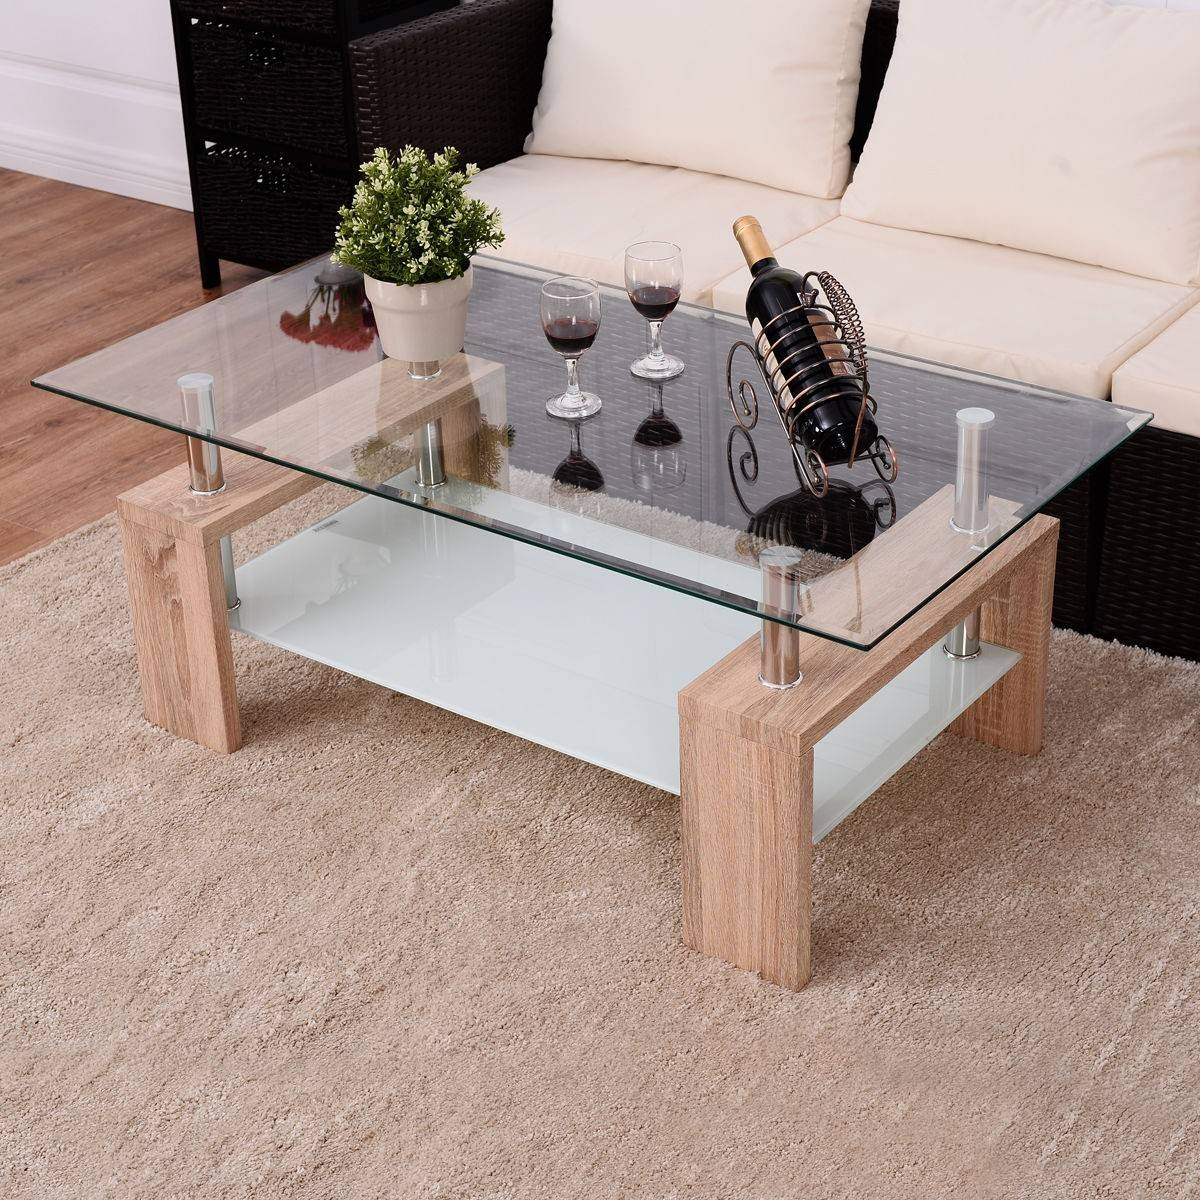 Rectangular Tempered Glass Coffee Table W/ Shelf - Coffee Tables for Glass Coffee Table With Shelf (Image 14 of 15)